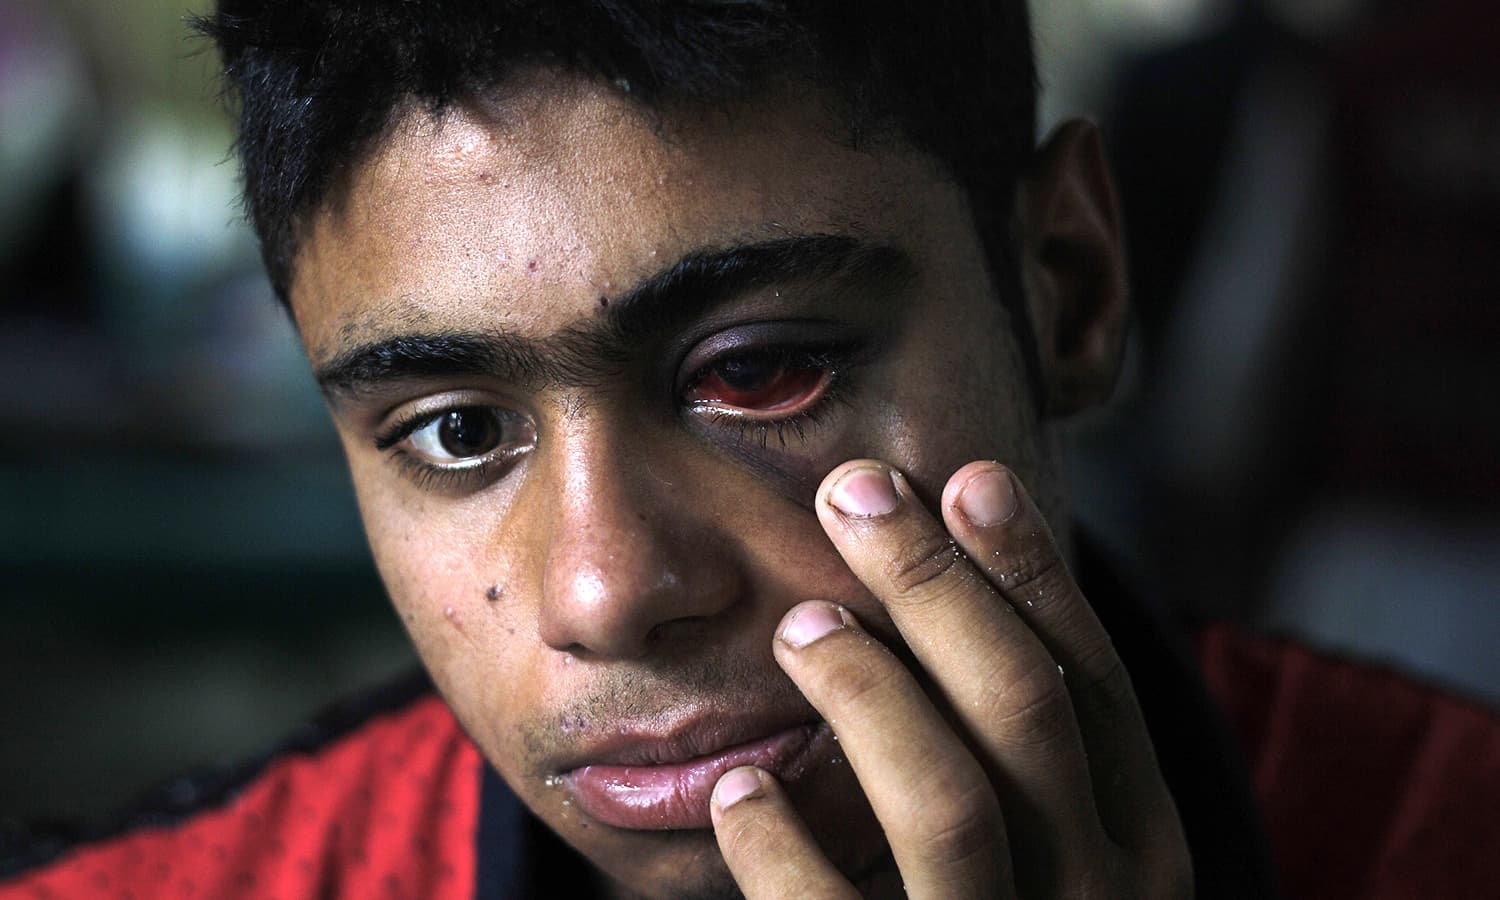 Injuries to the eyes have brought widespread condemnation against the use of pellet guns.